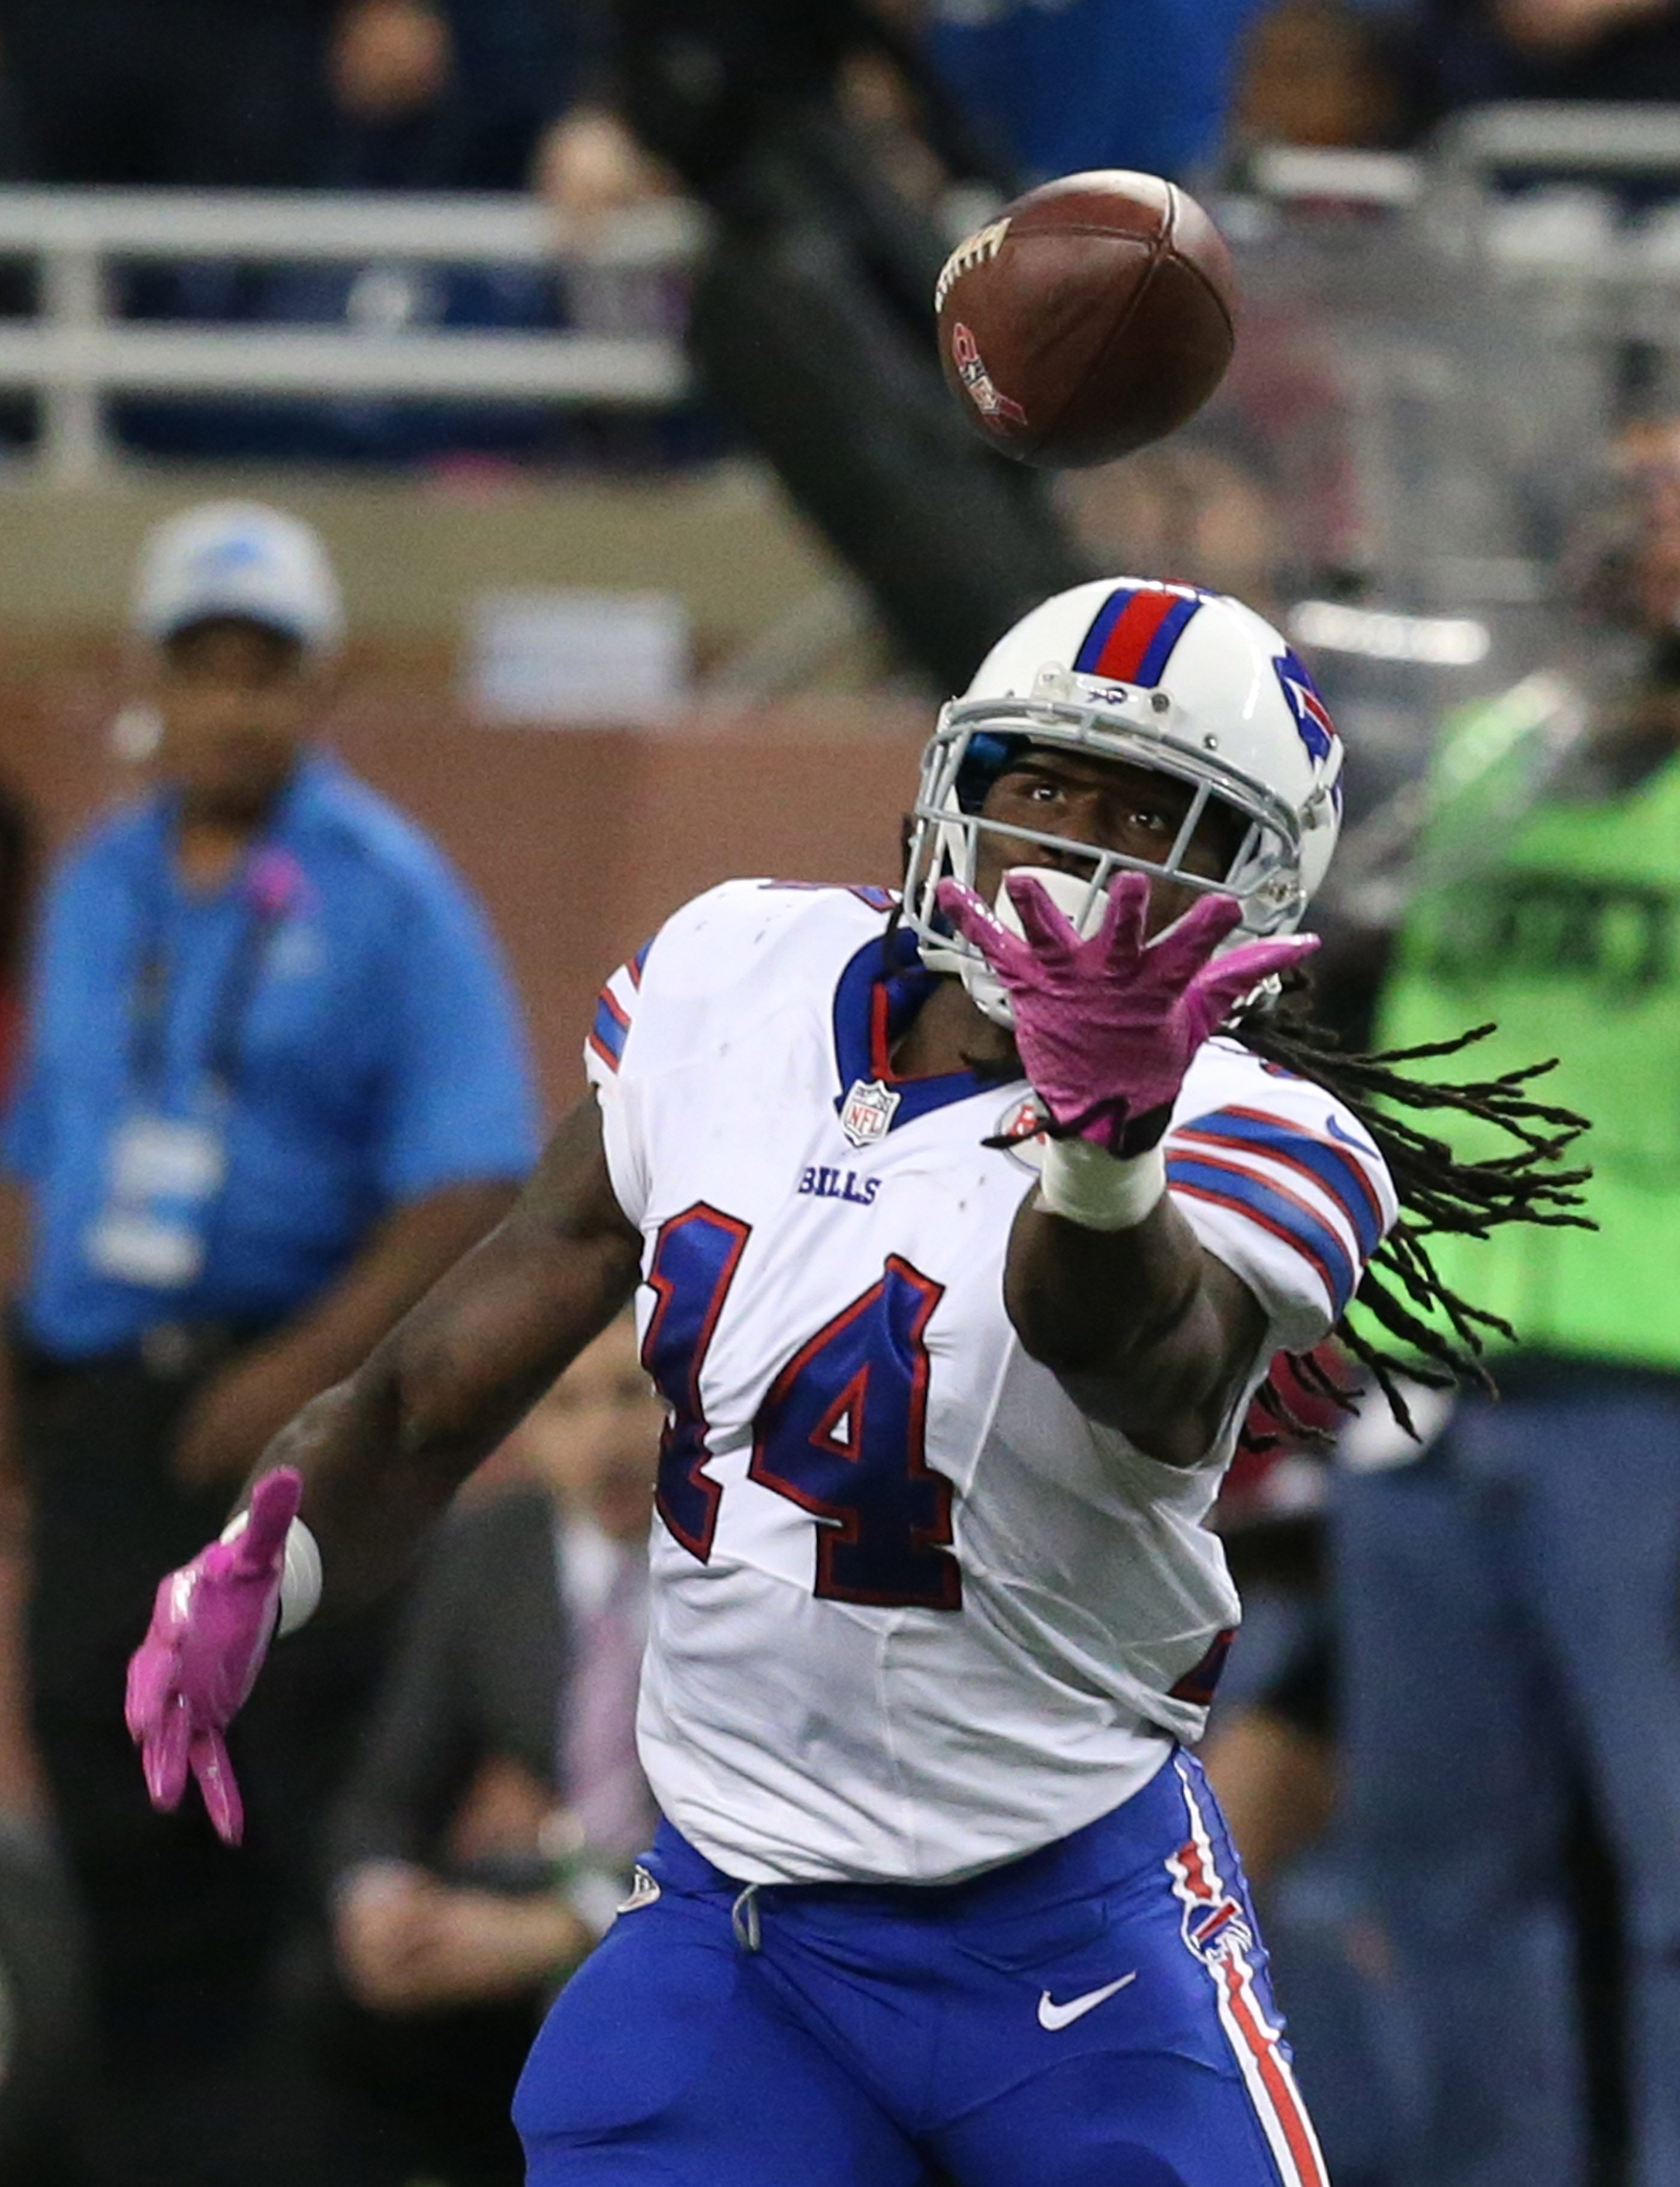 Bills wide receiver Sammy Watkins  has a chance to become one of the top receivers in the league, according to assistant coach Sanjay Lal.